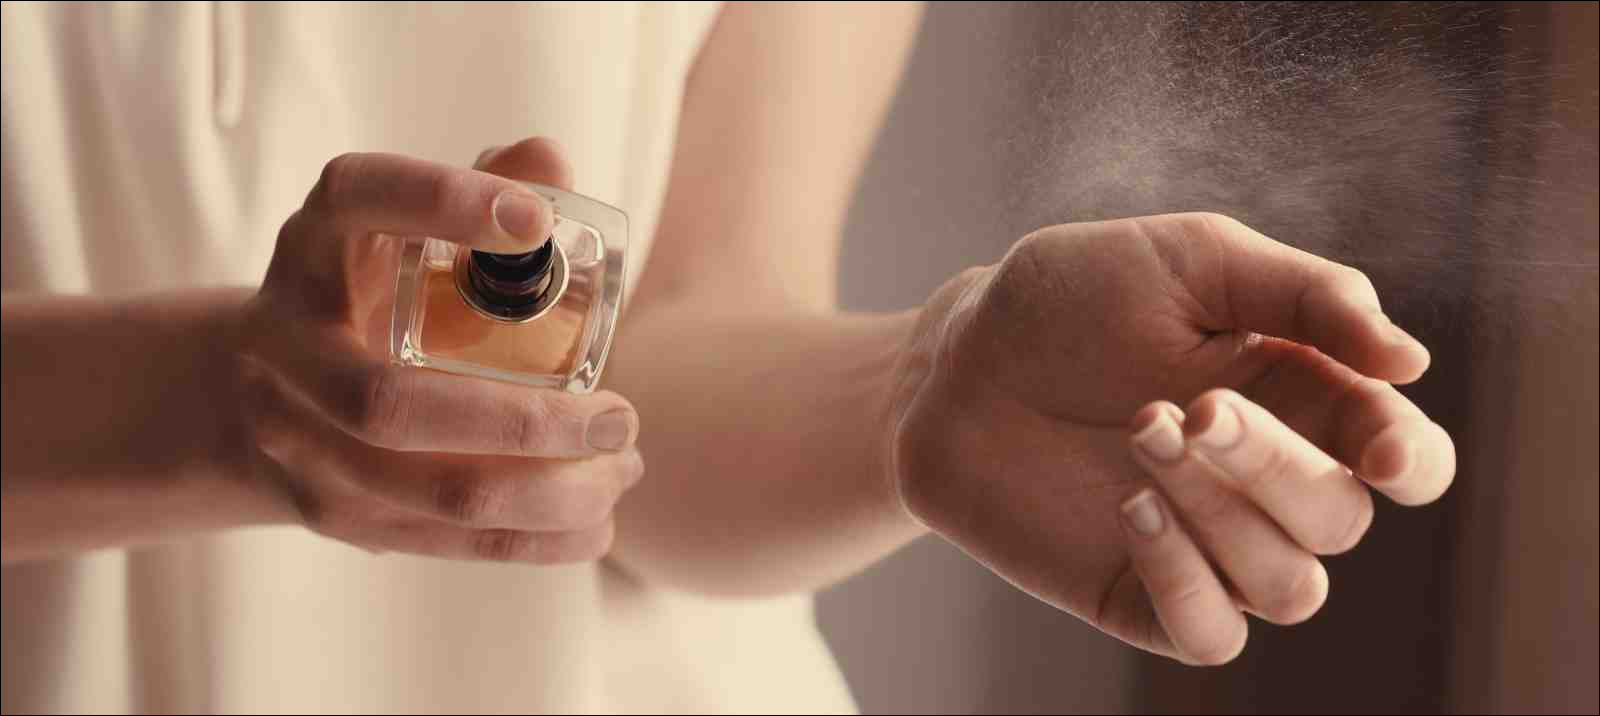 closeup of woman spraying perfume onto wrist